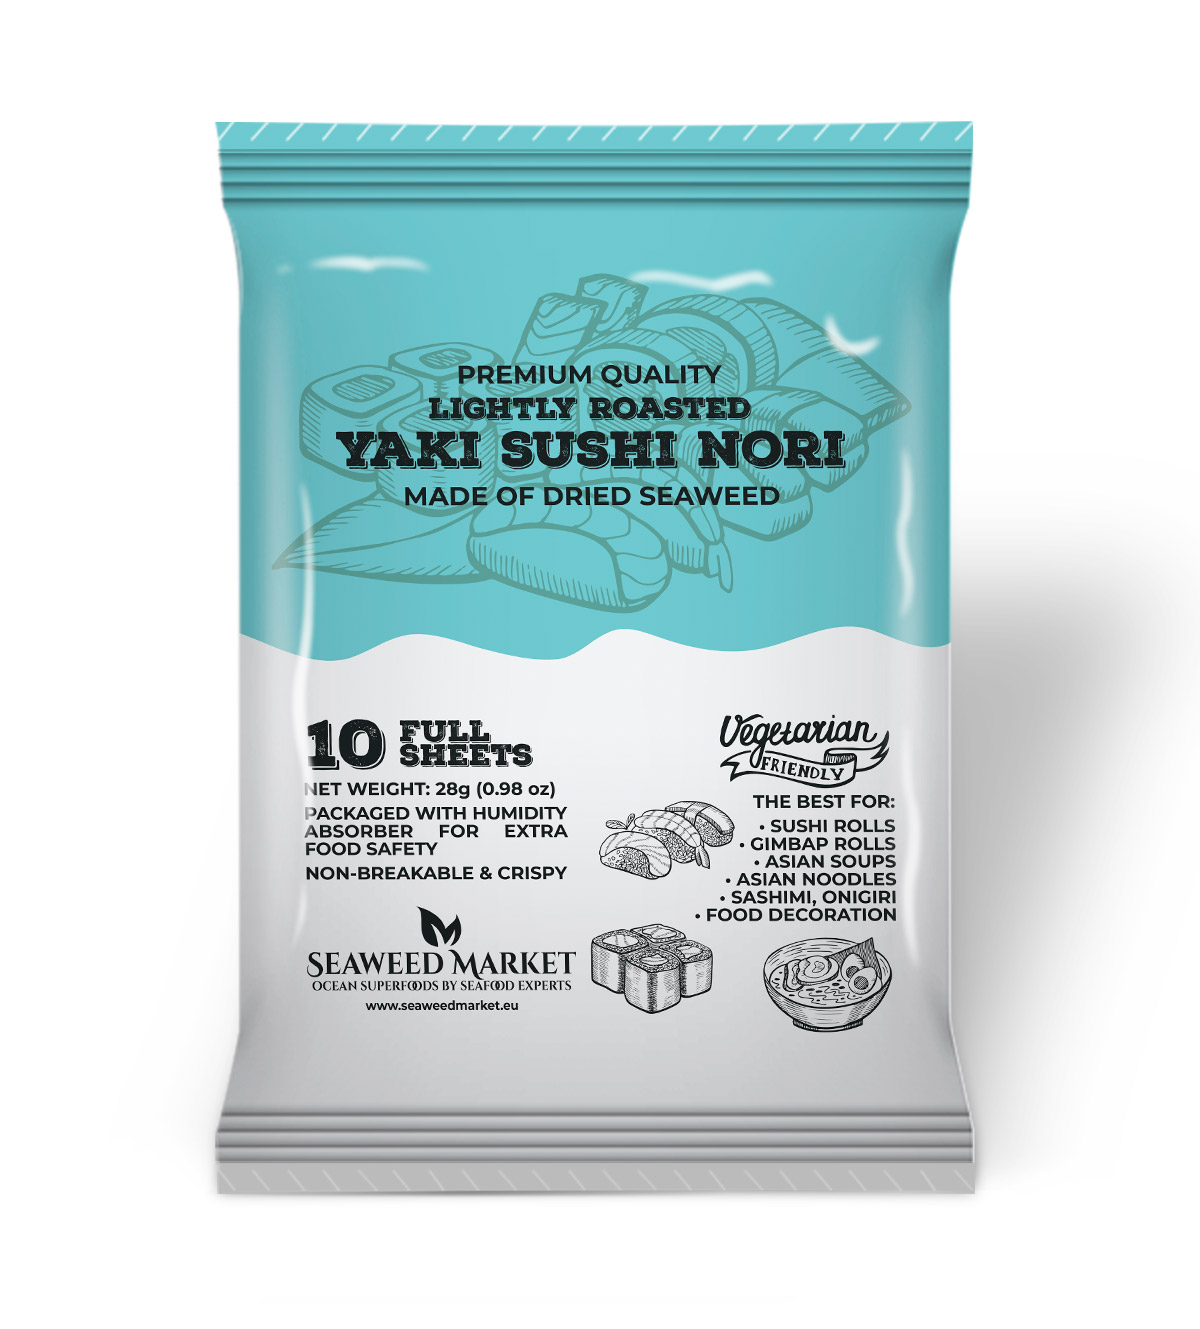 10 Full Sheets Nori Seaweed Market - European supplier